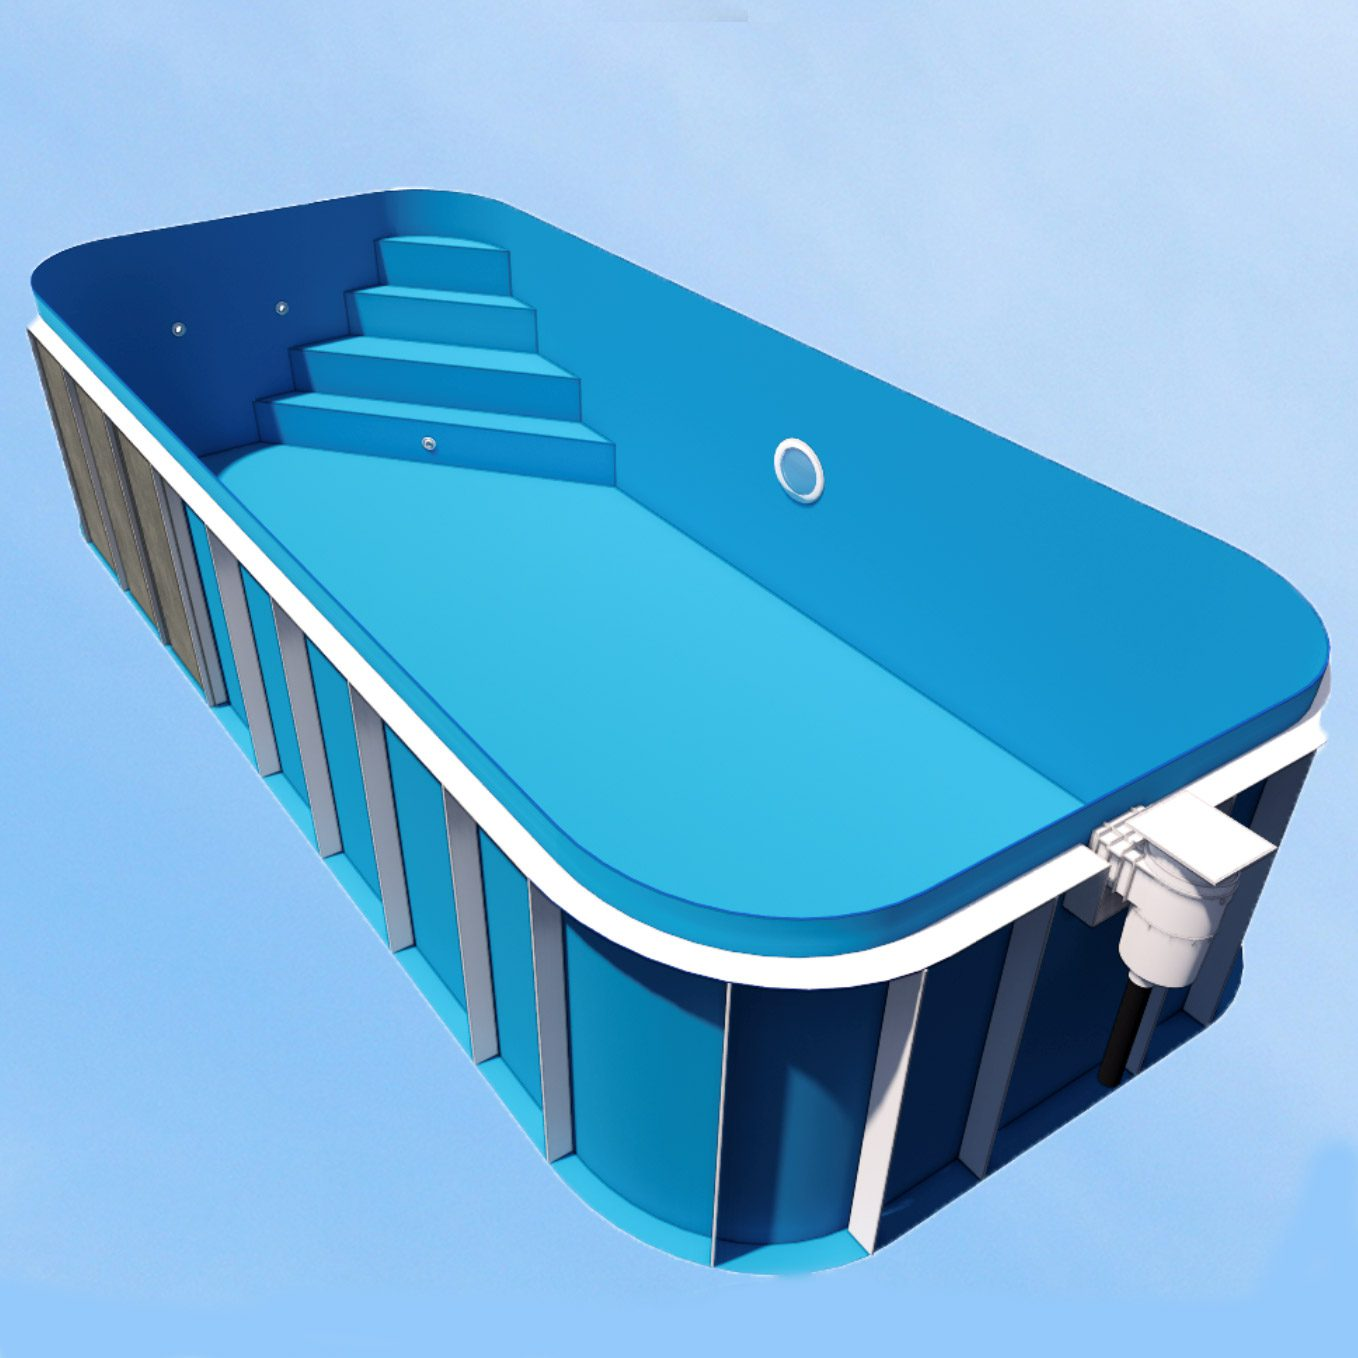 Dura Polymer Rectangle Swimming Pool 6m X 3m X 1.5m